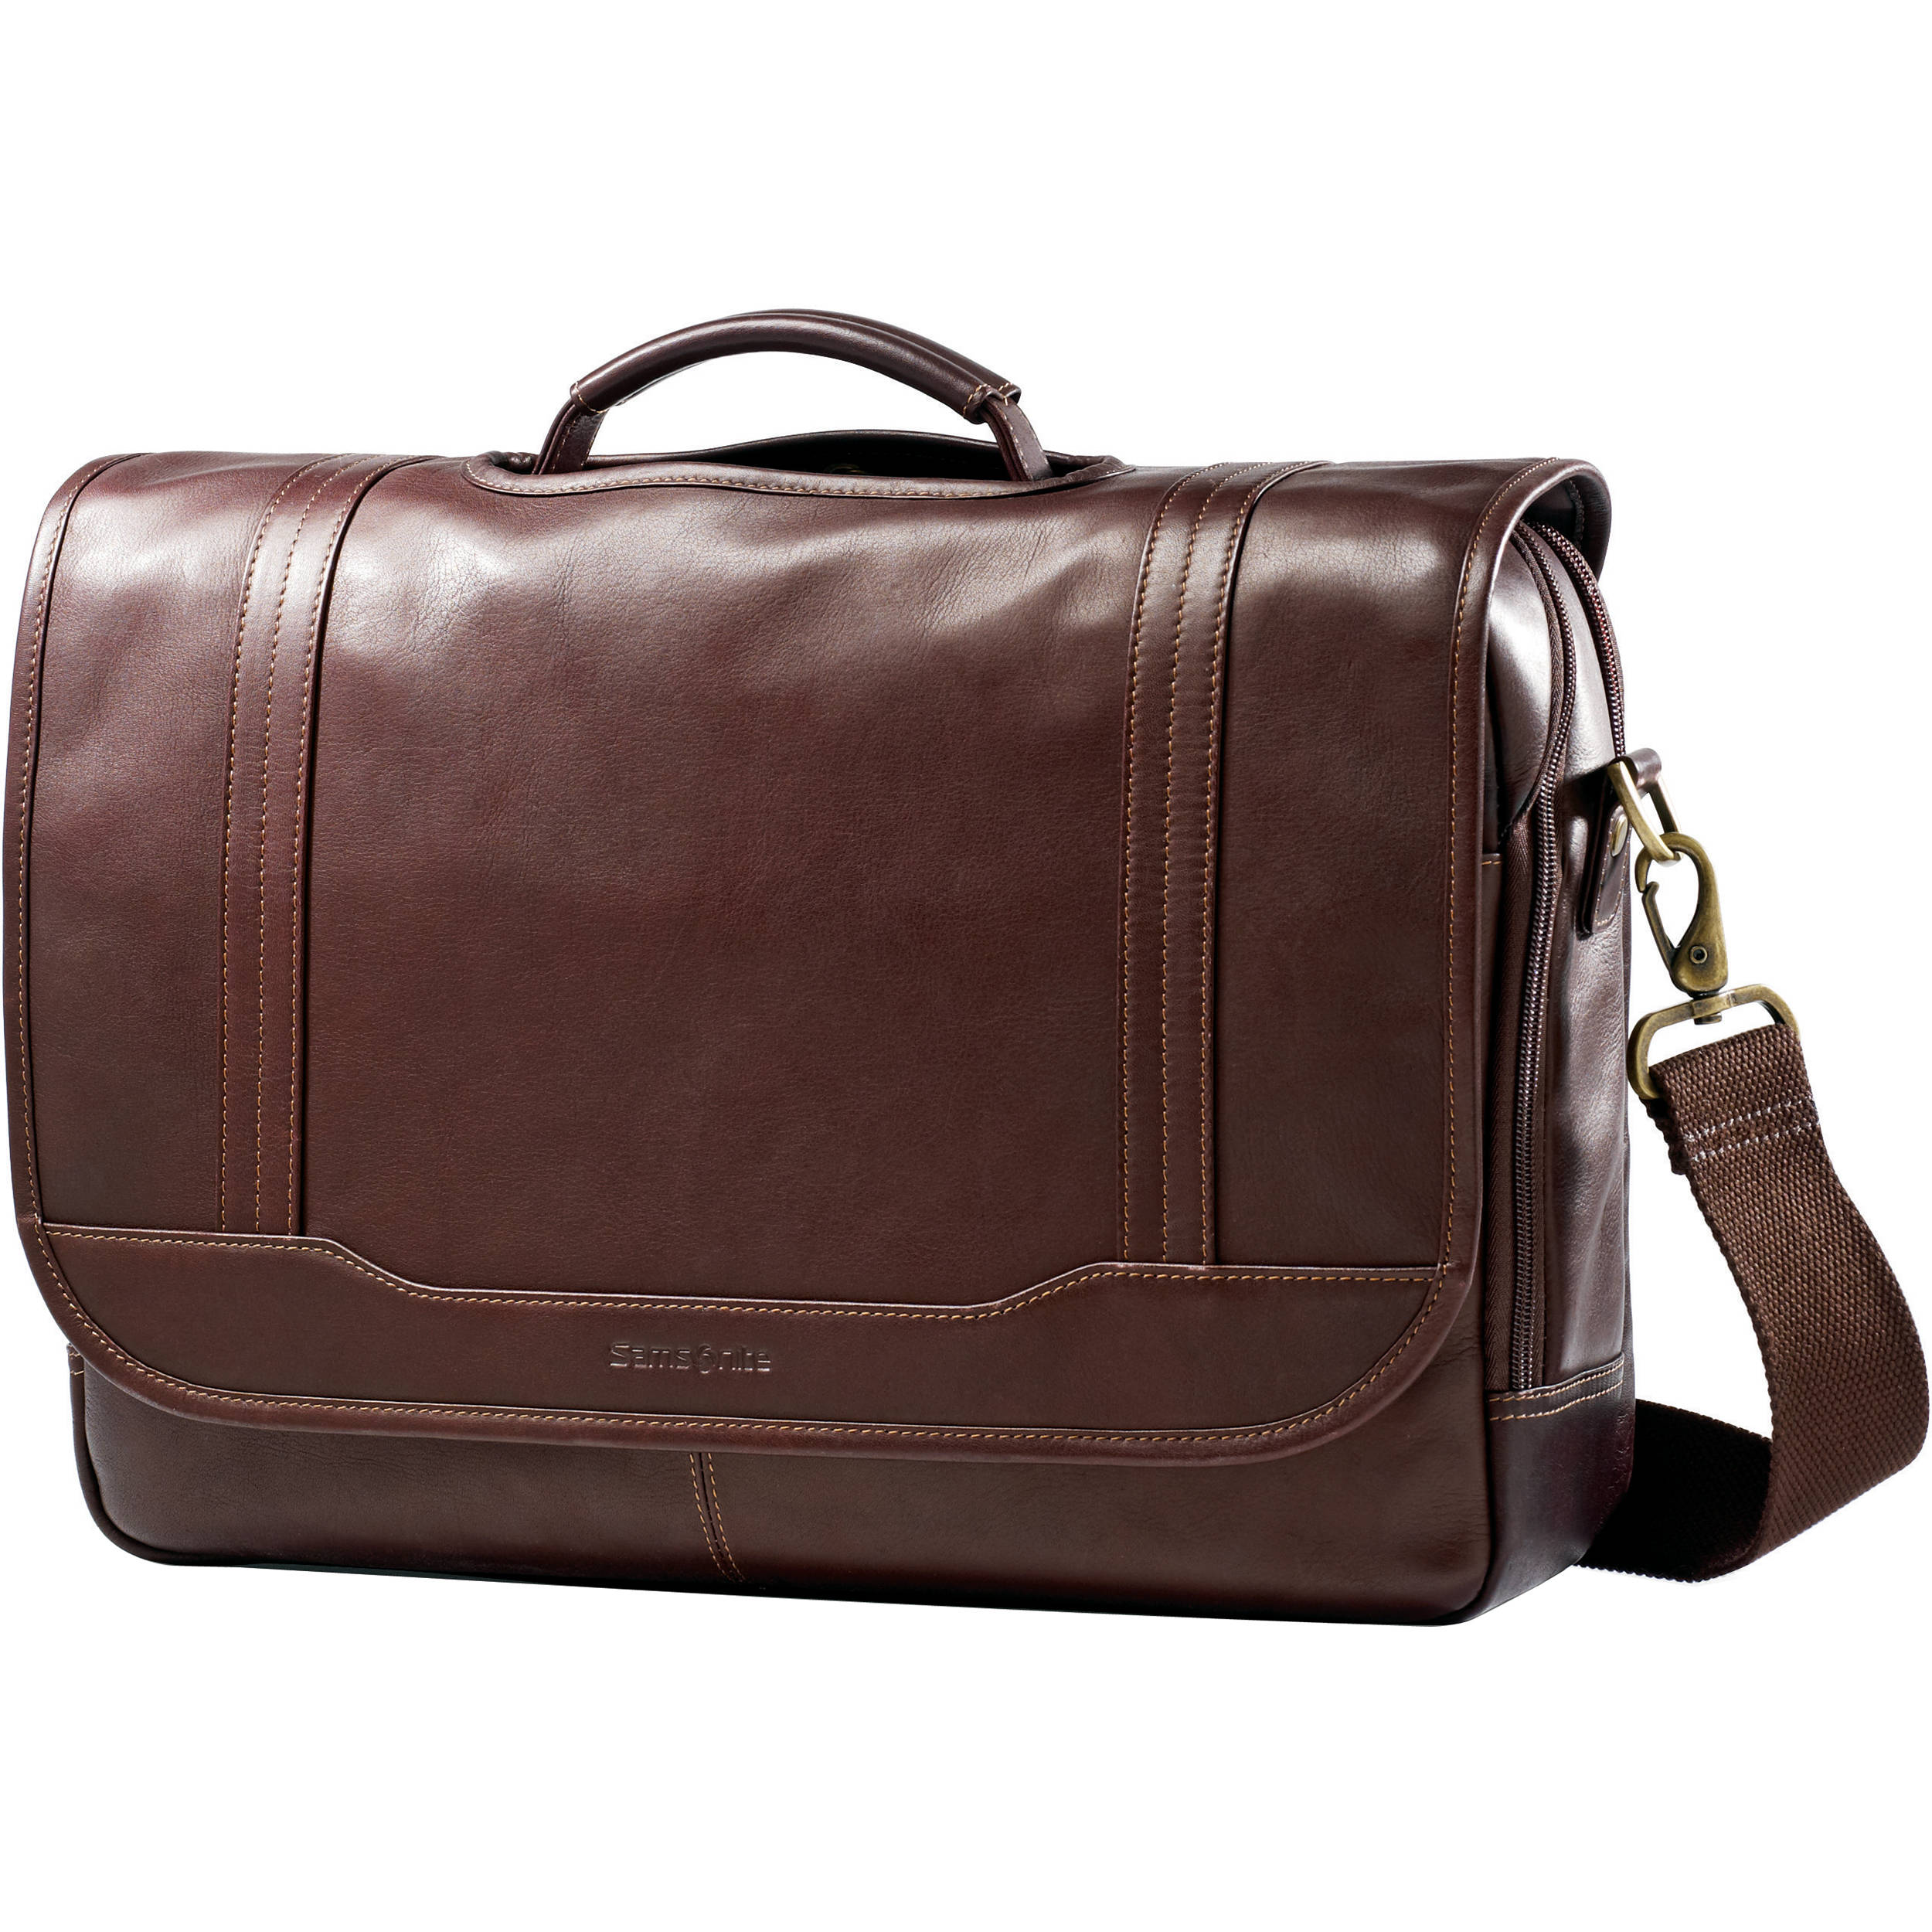 Samsonite Colombian Leather Flapover Briefcase 50789 1139 B Amp H